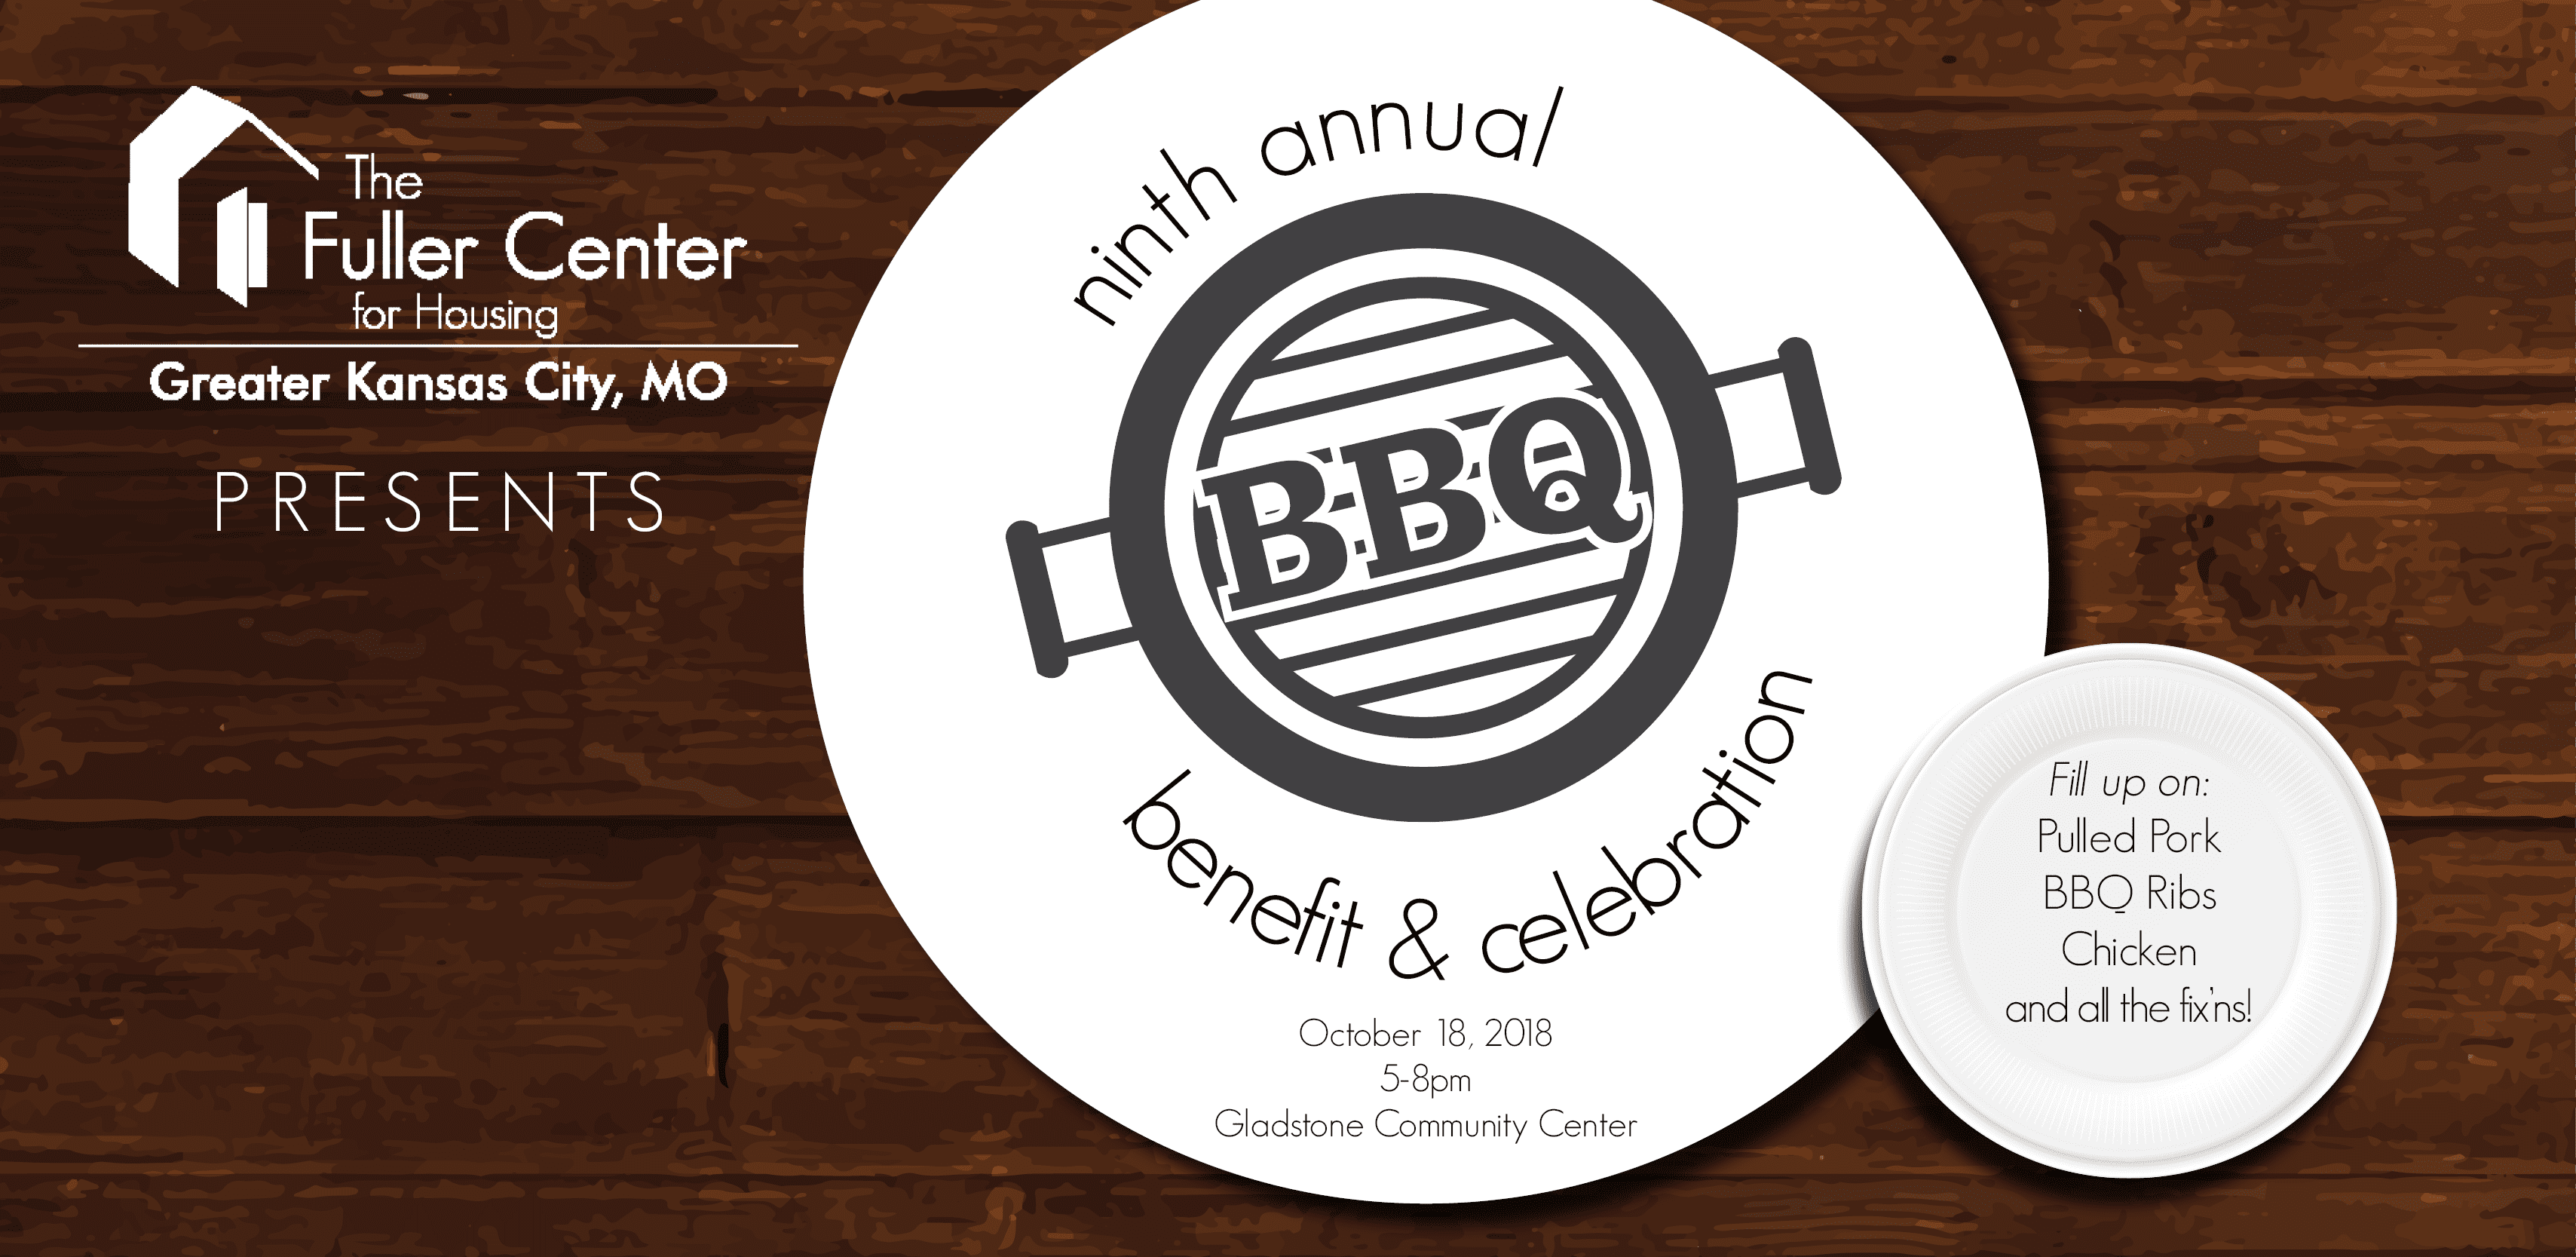 Graphic: Fuller Center for Housing of Greater Kansas City presents 9th Annual BBQ, Benefit & Celebration | fullercenterkc.org